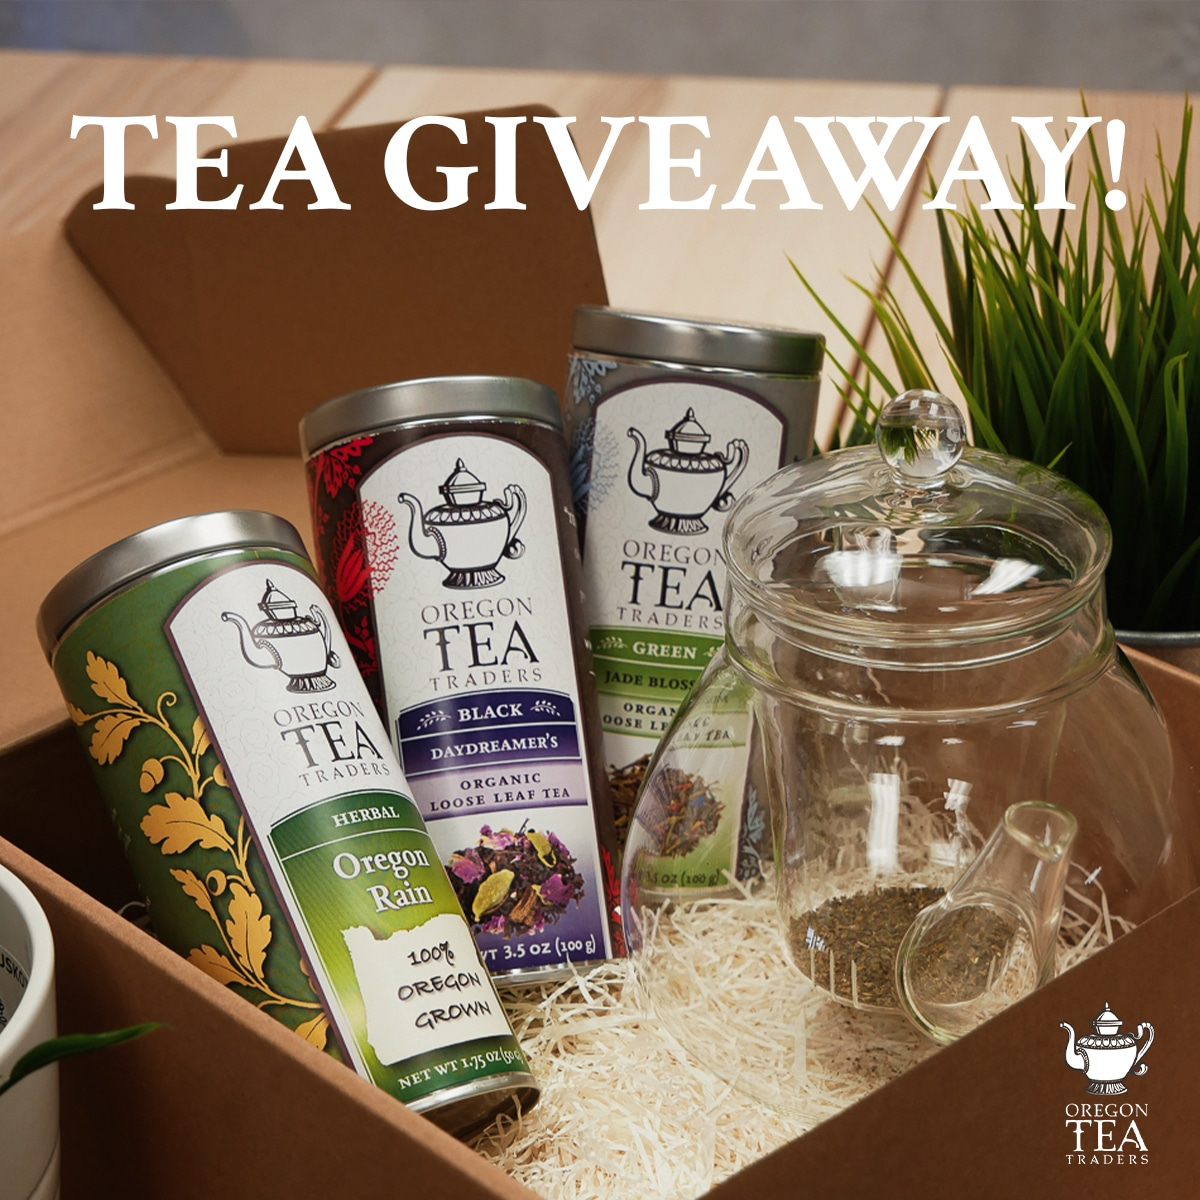 Tea and Accessories Giveaway Giveaway Image